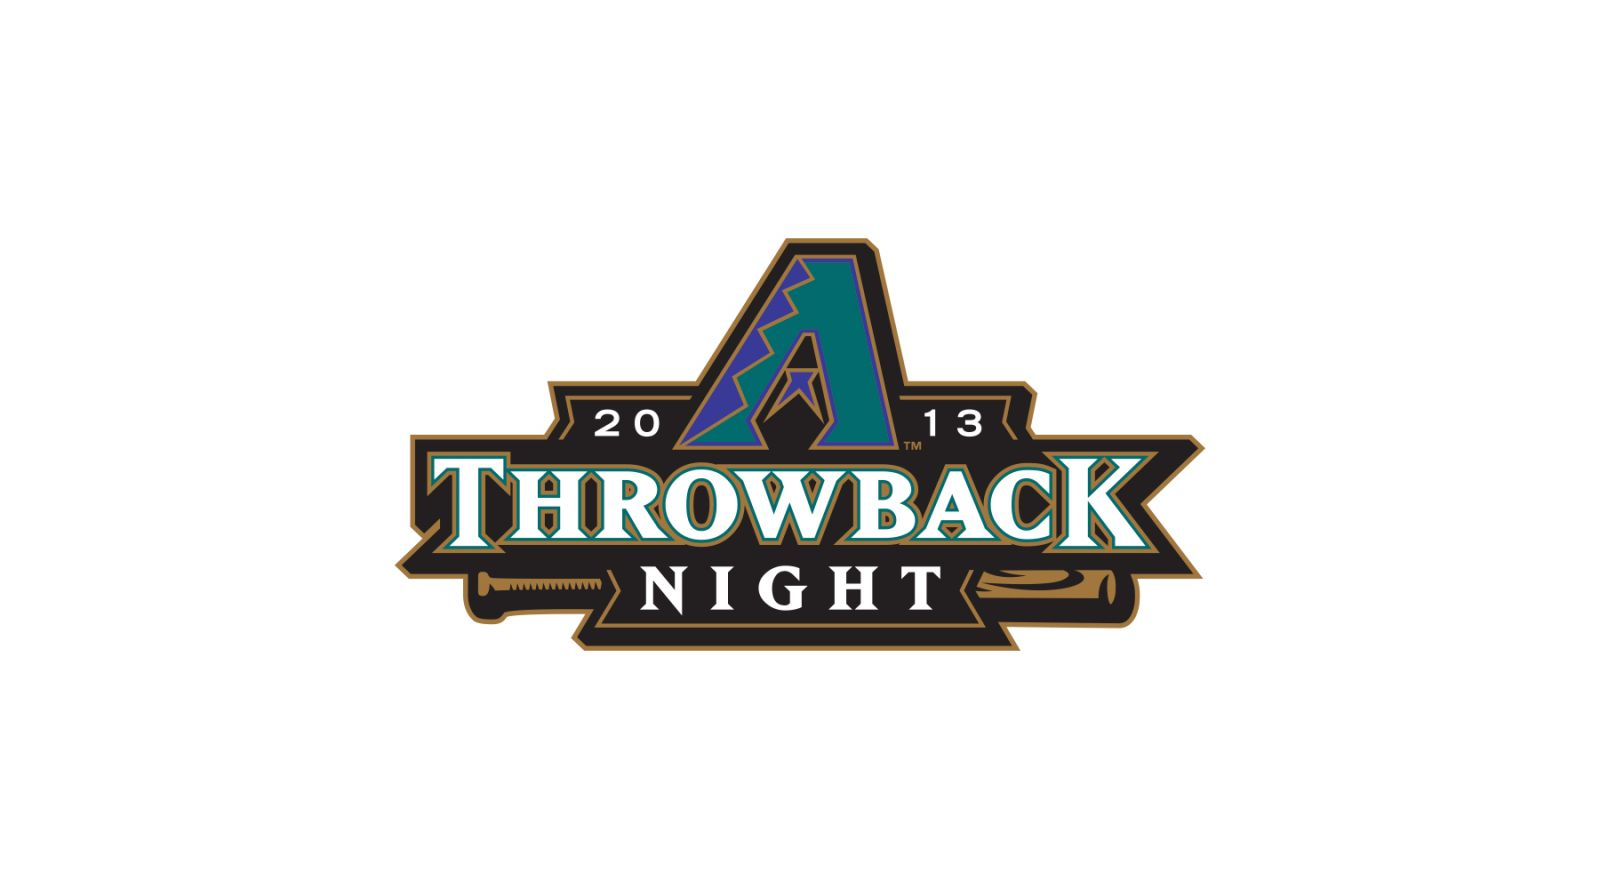 Arizona Diamondbacks 2013 Throwback night logo by Brian Gundell